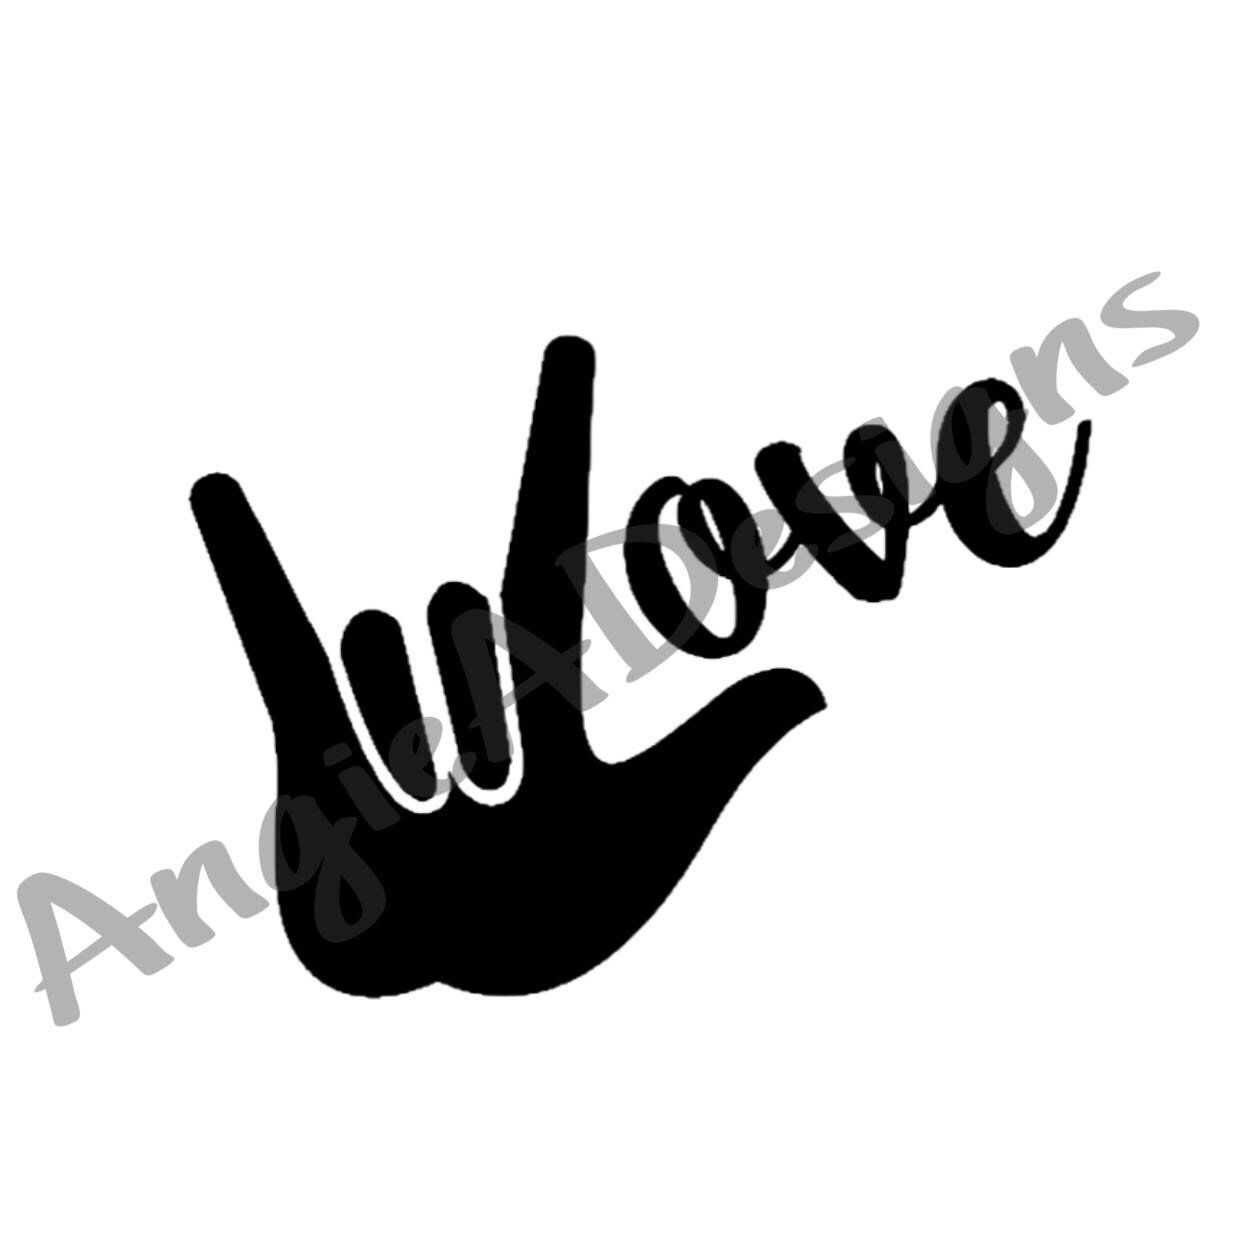 Love Asl I Love You Hand Svg By Angieadesigns On Etsy Https Www Etsy Com Listing 598220820 Love A Love Yourself Tattoo I Love You Signs Sign Language Art